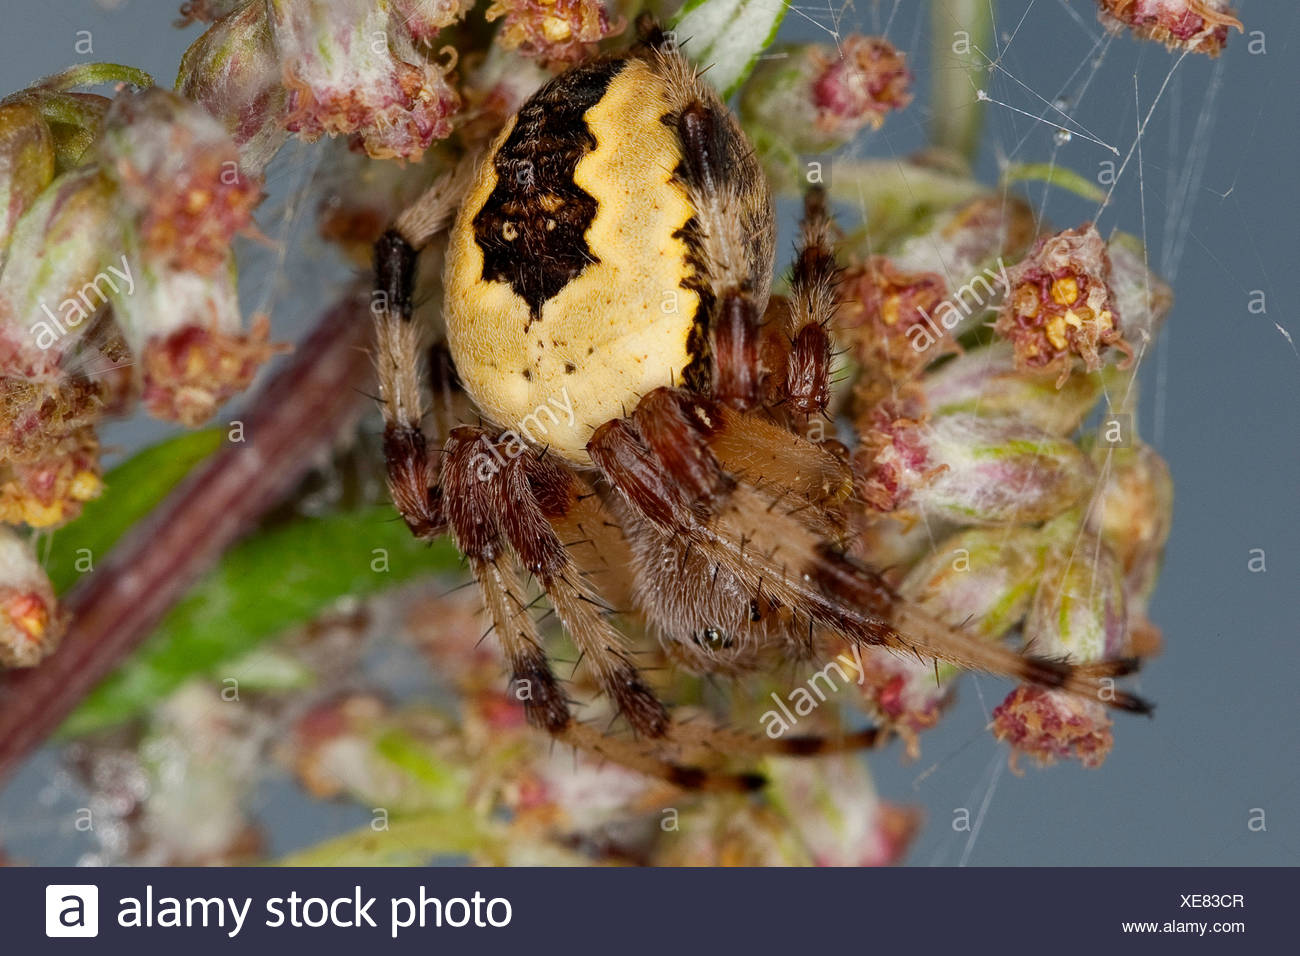 marbled orbweaver, marbled spider (Araneus marmoreus f. pyramidata, Araneus marmoreus pyramidata), on a grass ear, Germany - Stock Image